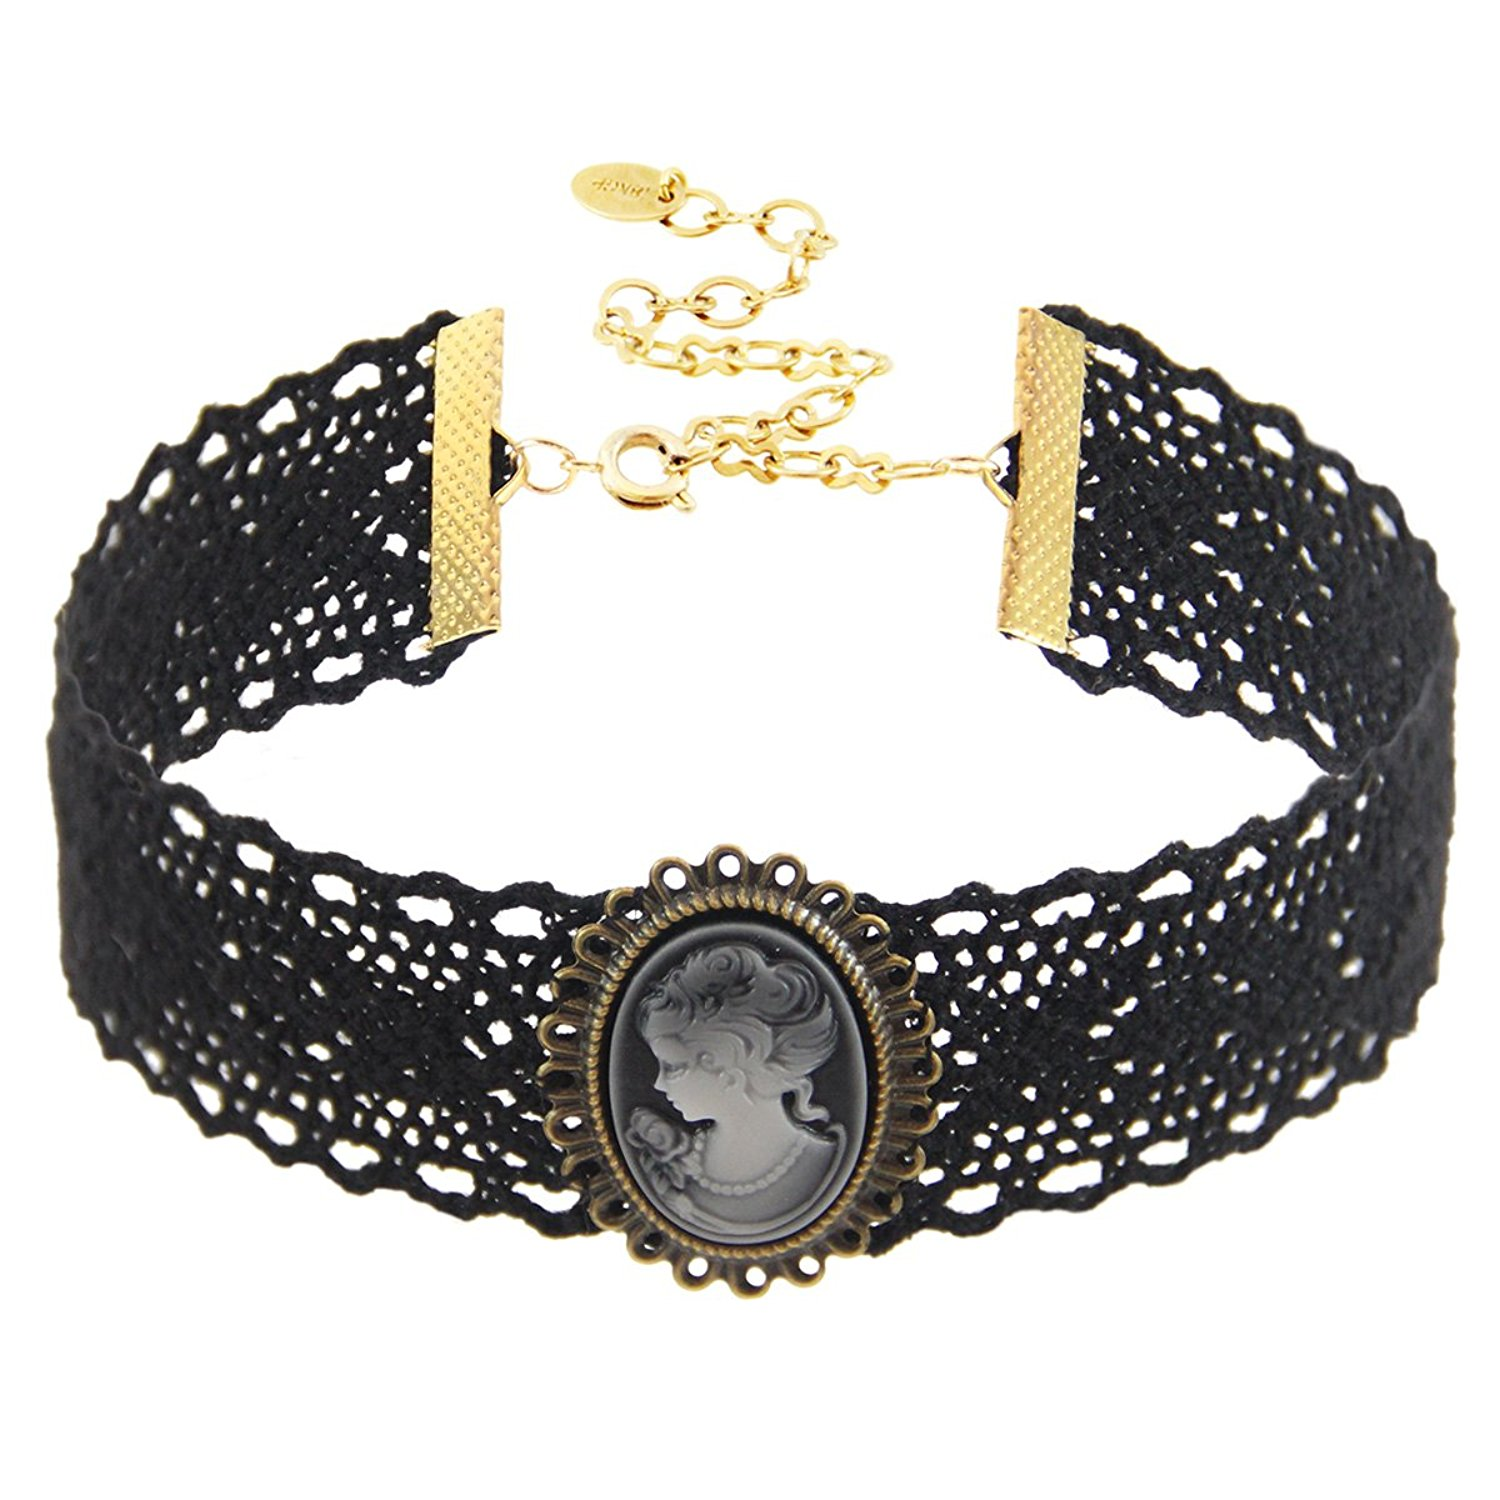 "Choker Necklace Black Cotton Lace Choker with Cameo Accent, 18K Gold Plated Closure.Length: 11"" with 4"" extender, Width: 30mm. Pendant Size: 28x35 mm."